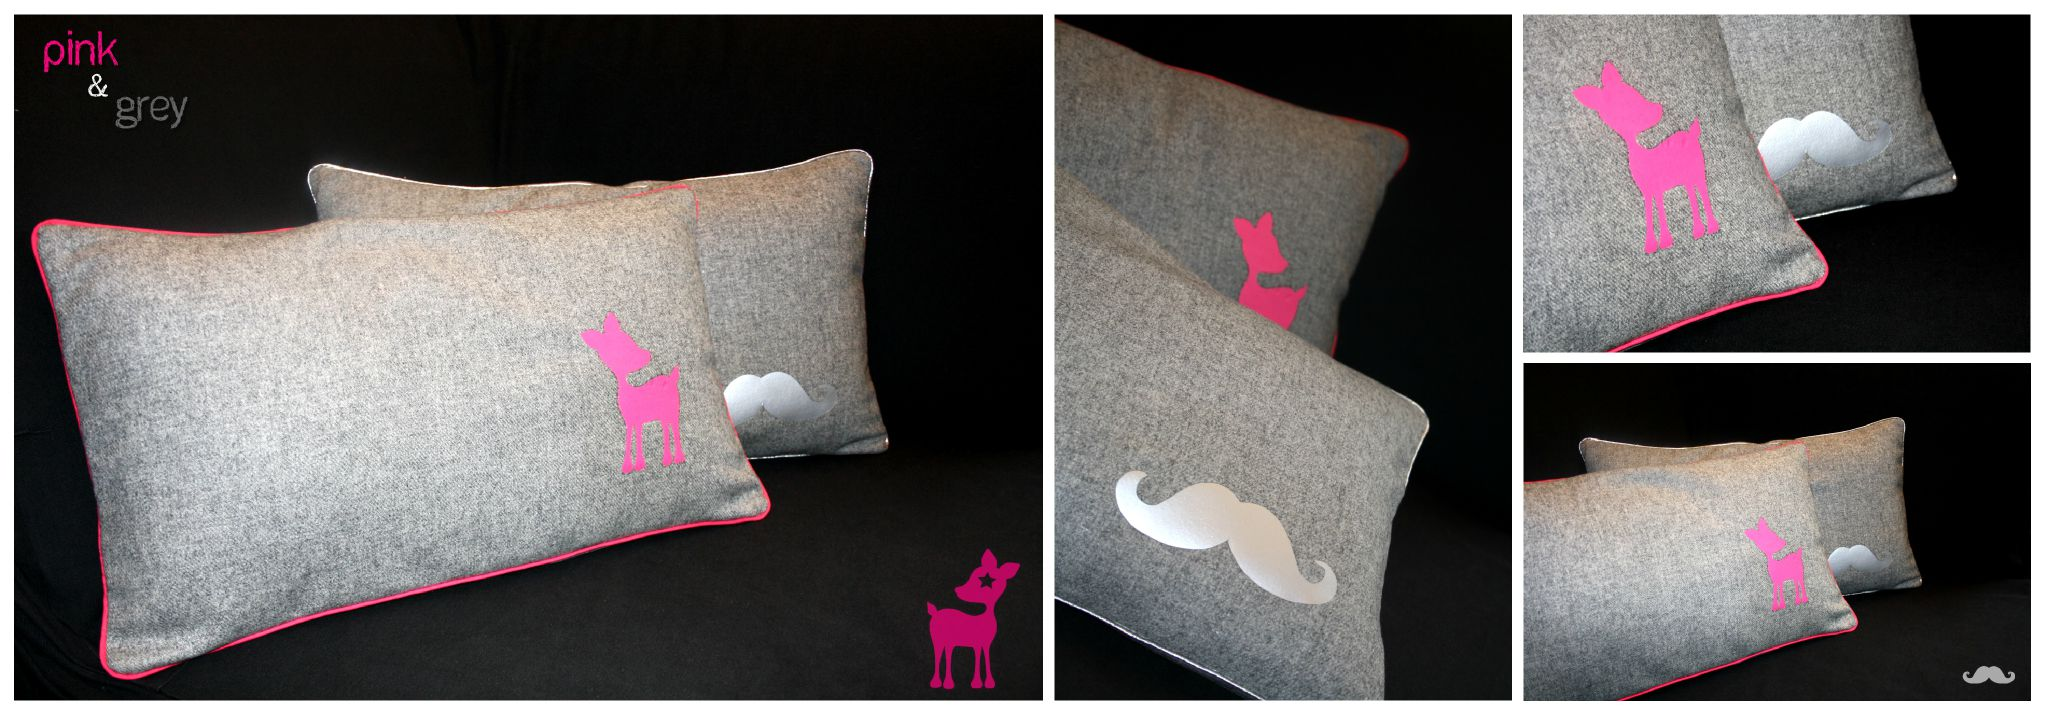 Pink grey lafeelafee for Patron housse coussin rectangulaire